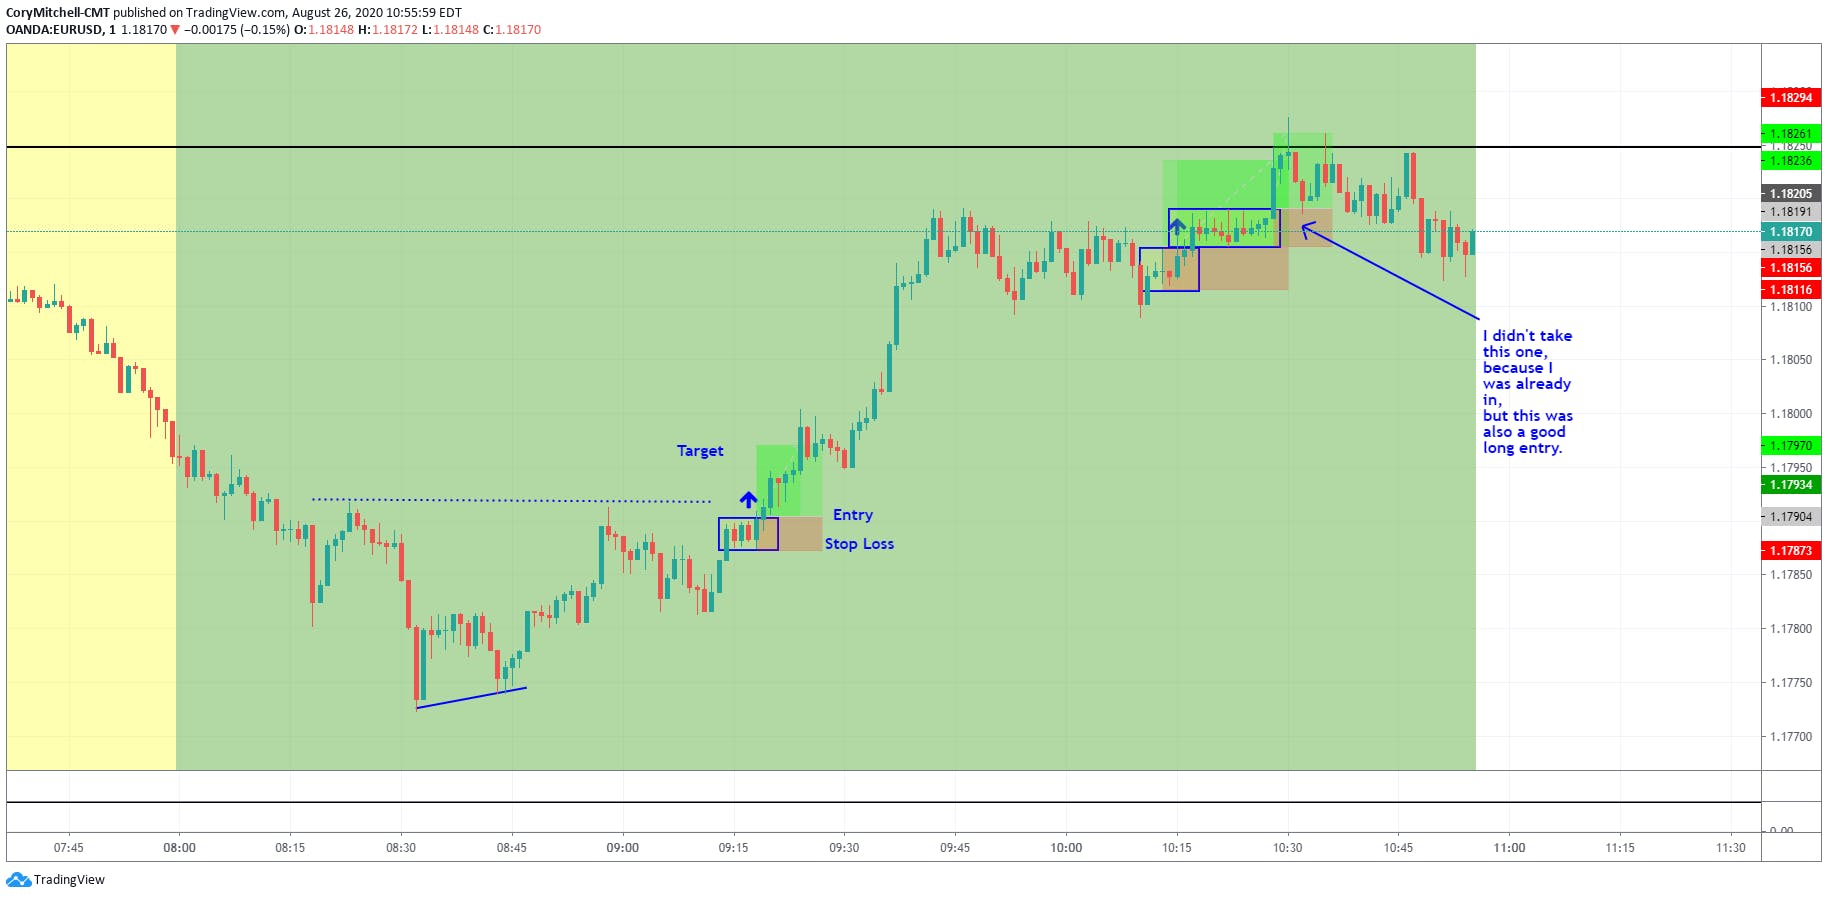 EURUSD day trading on the 1-minute chart August 26 2020